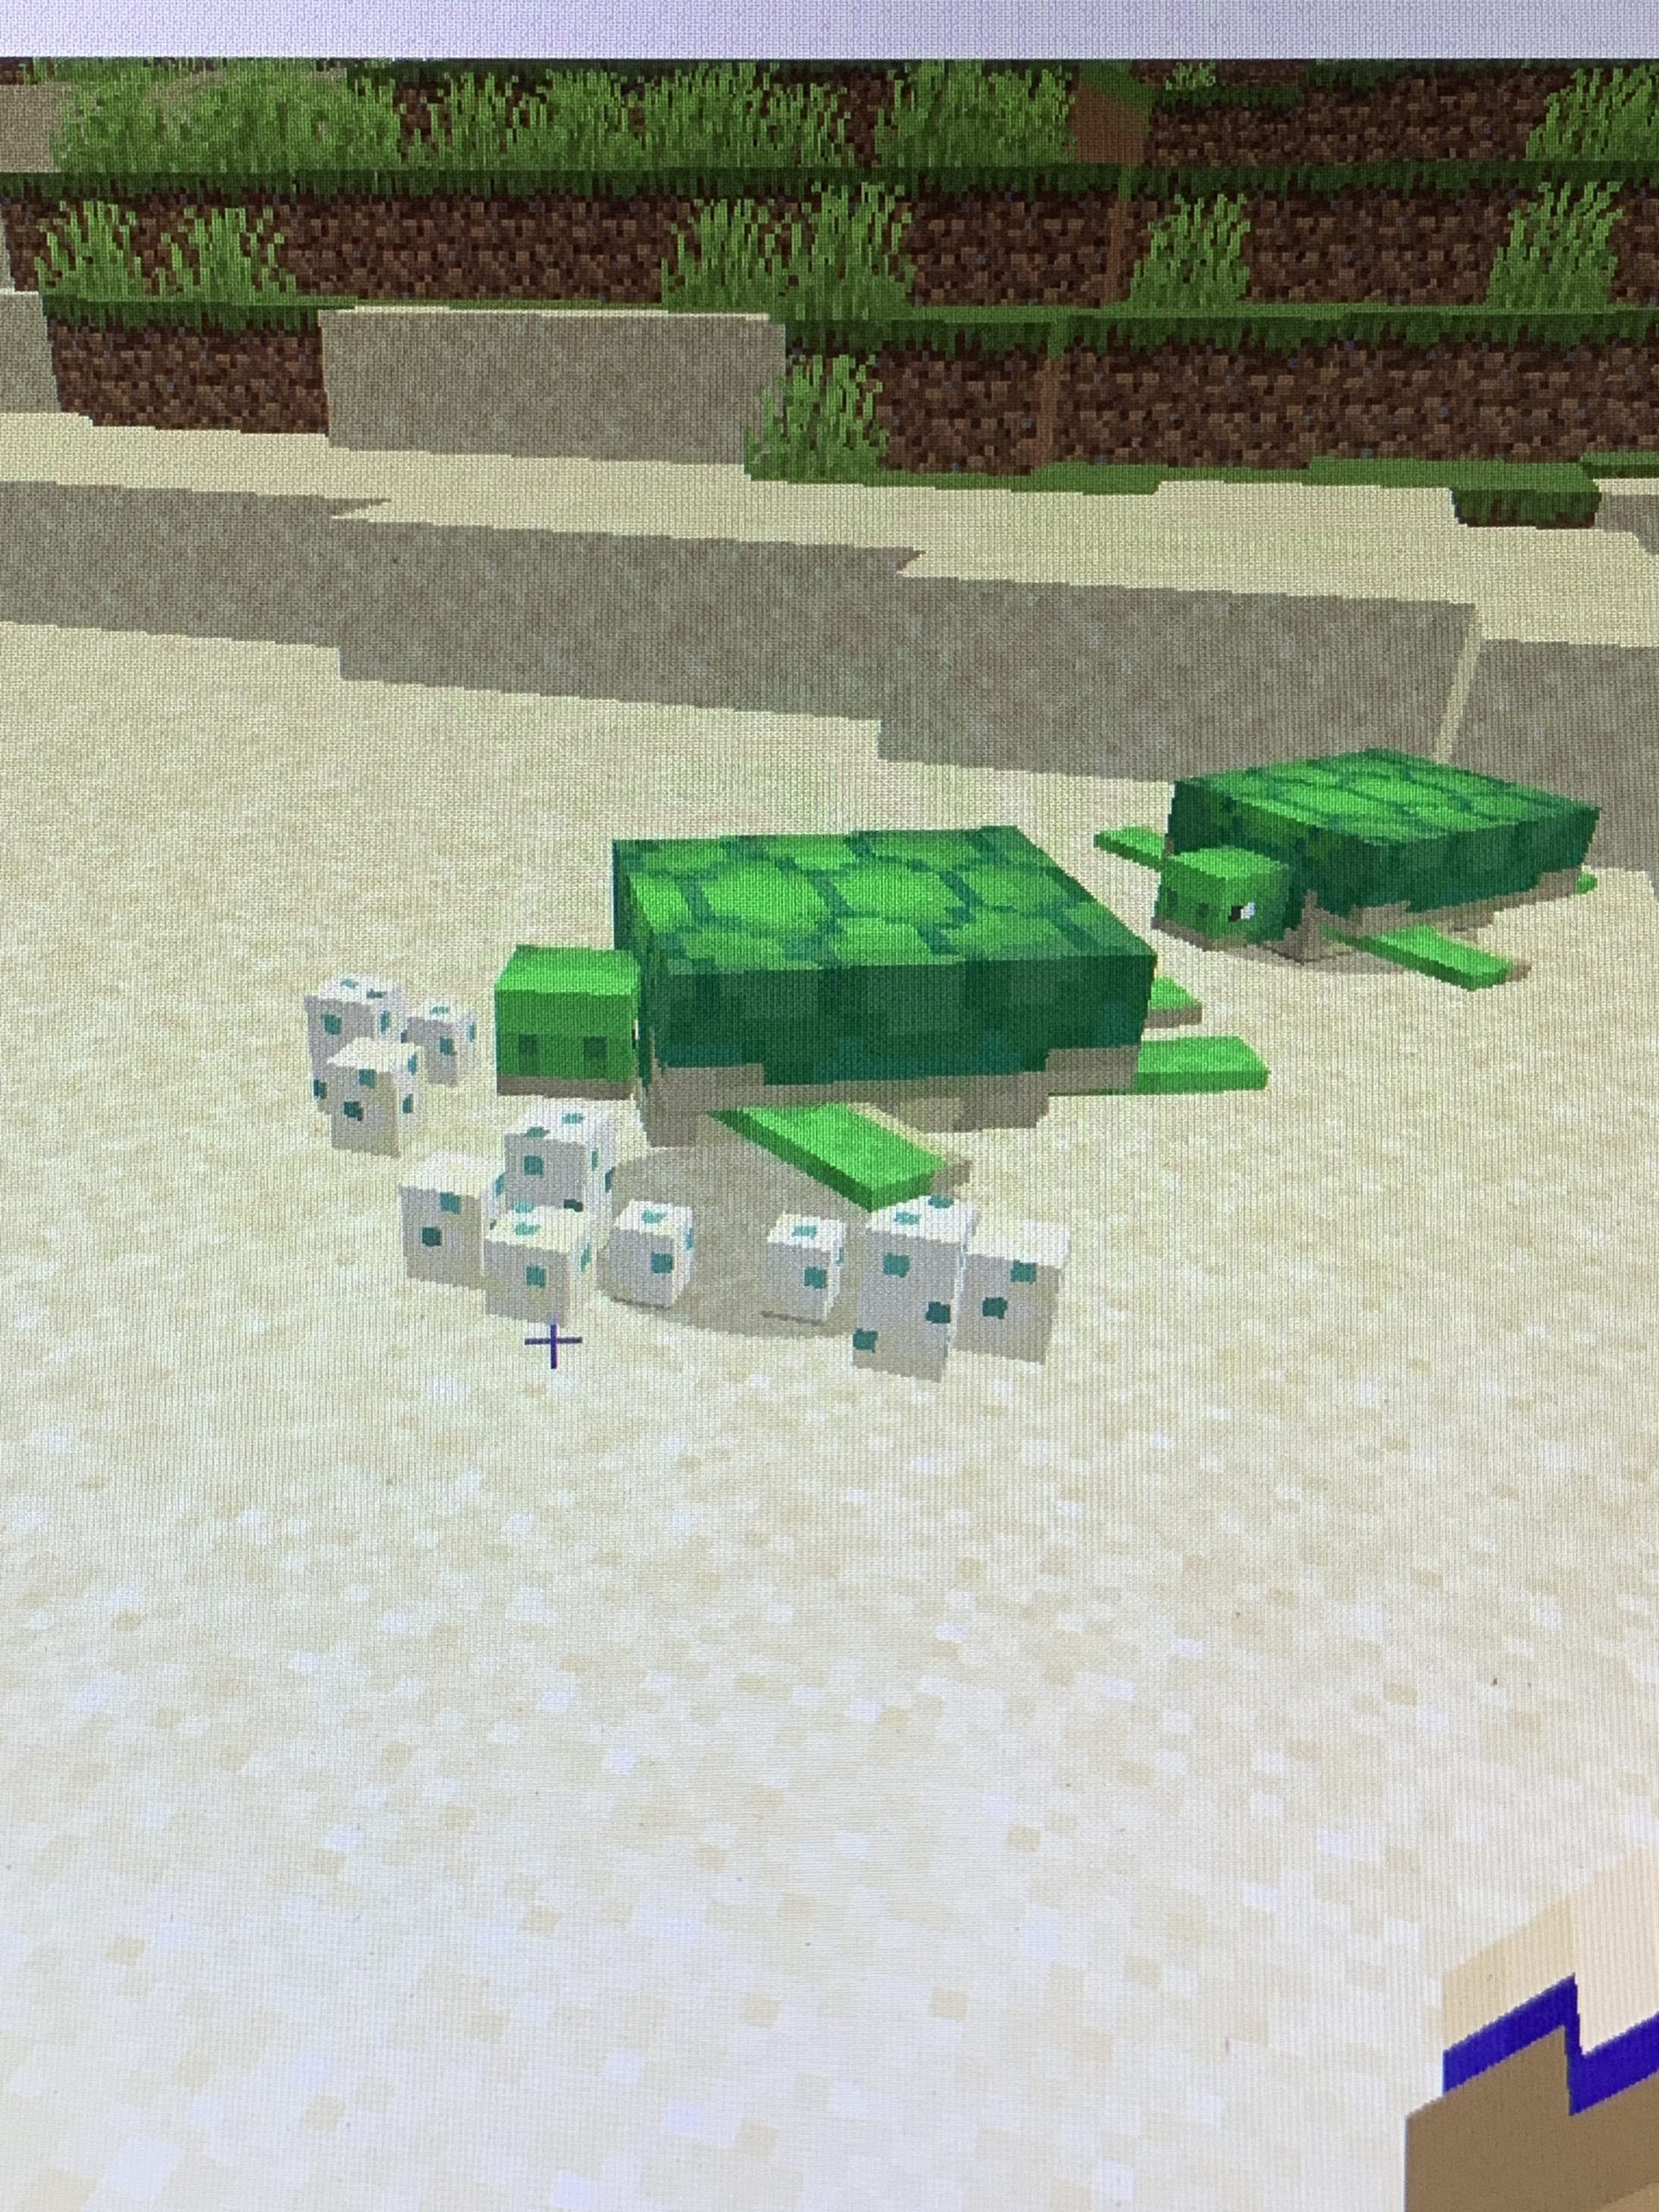 Two turtles in Minecraft laying eggs